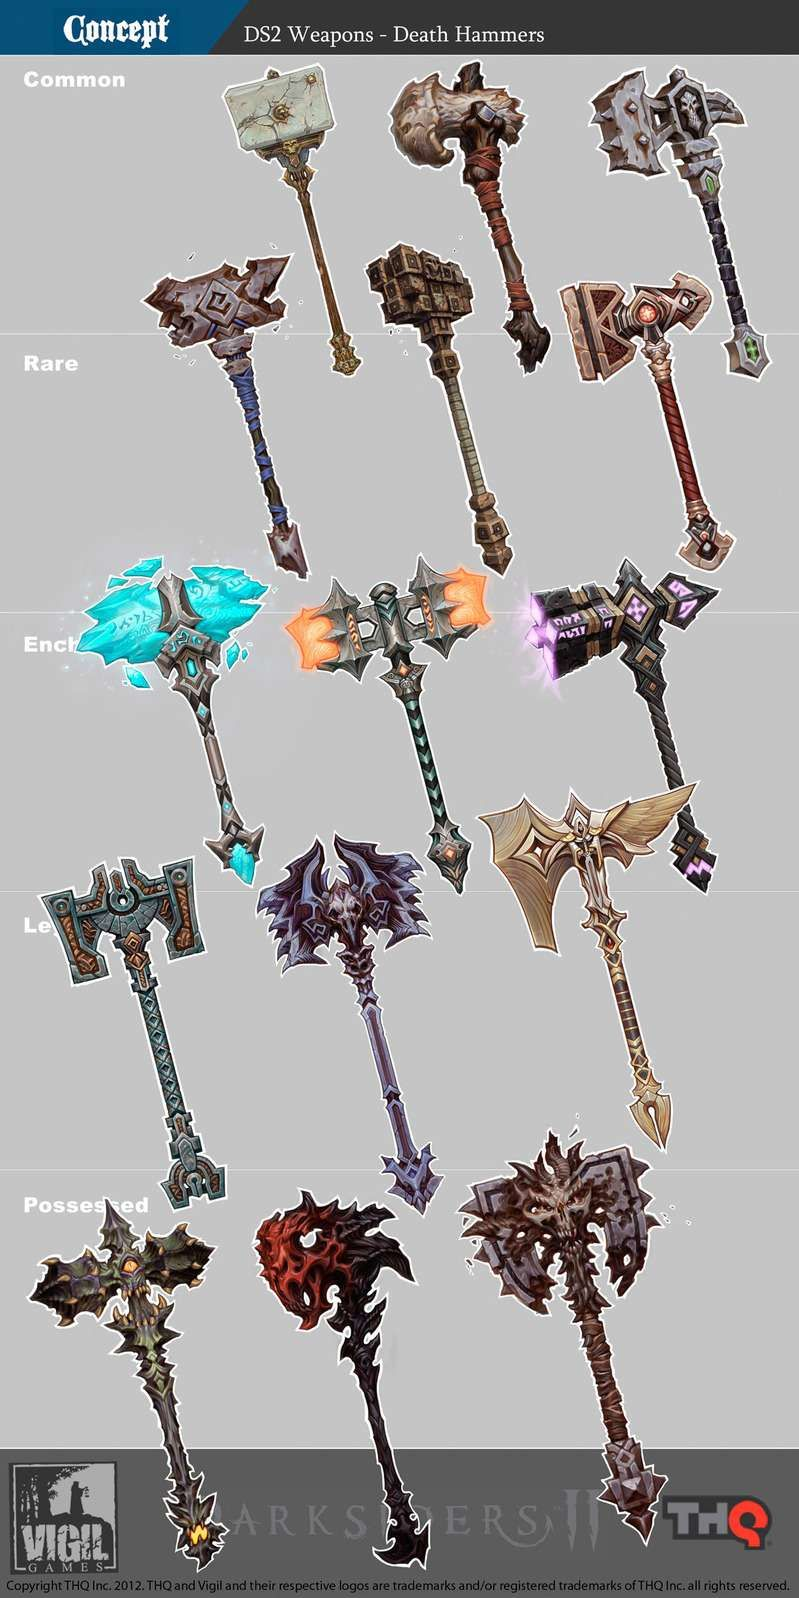 Concept art of Hammers from Darksiders 2 by Jonathan Kirtz